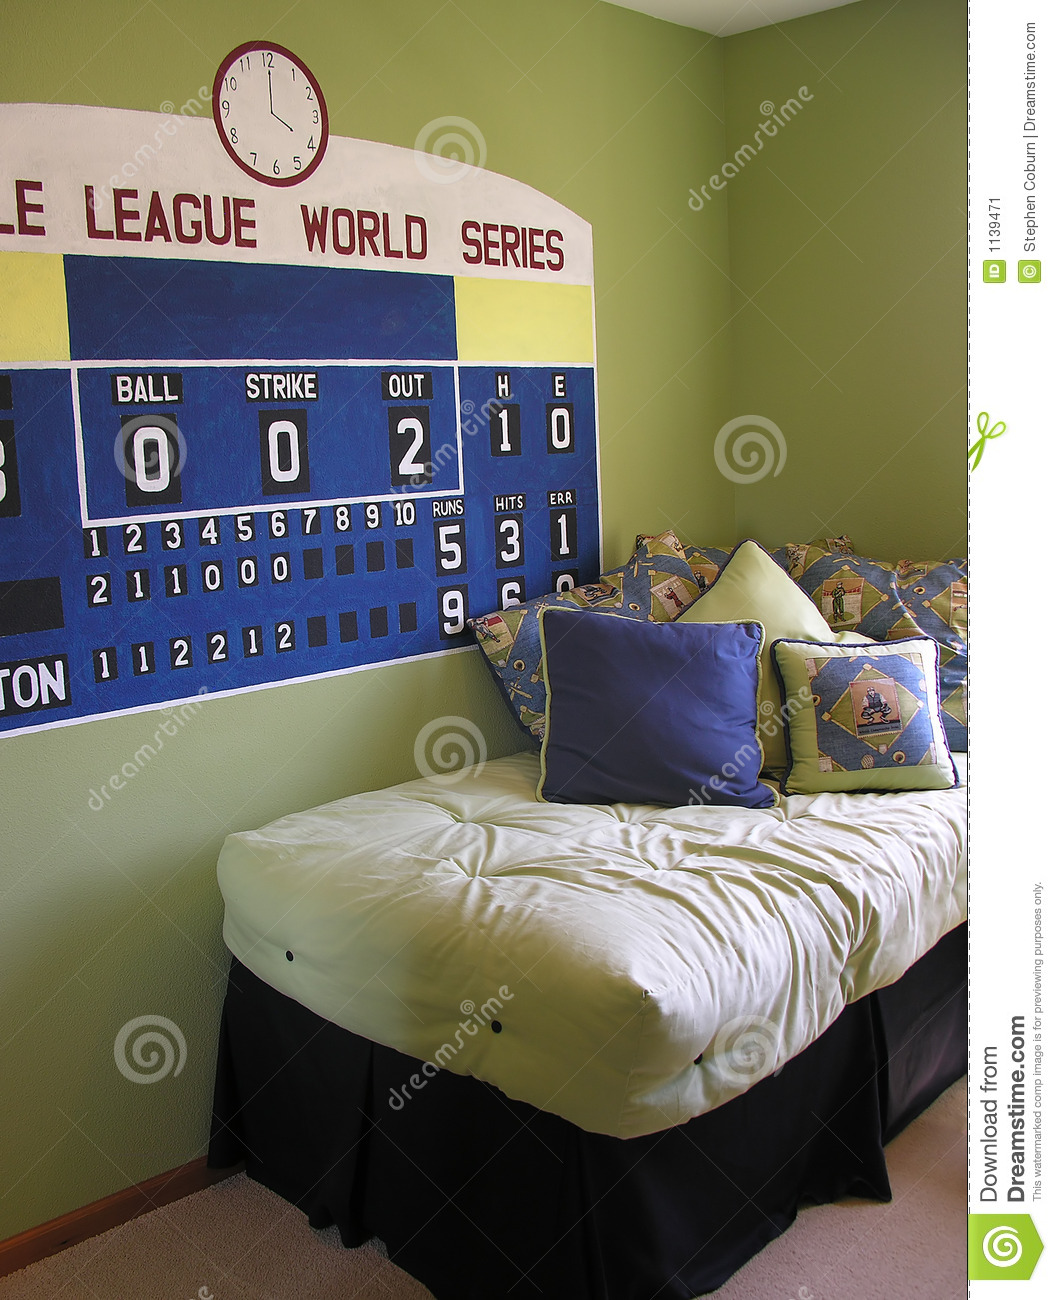 Baseball Themed Bedroom With A Scoreboard On The Wall